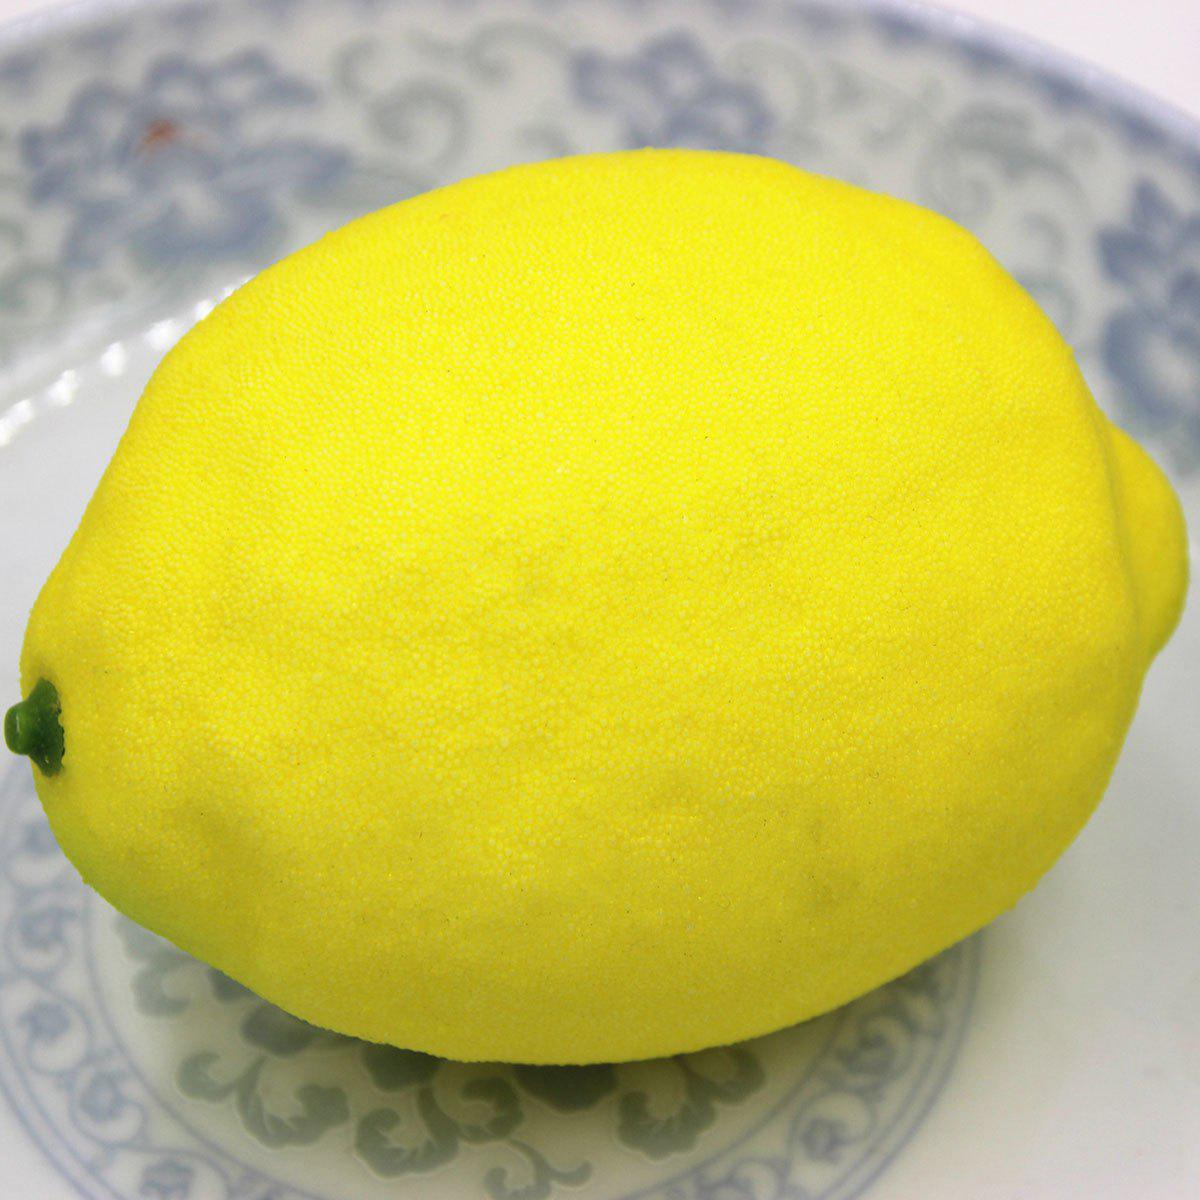 2018 Simulated Lemon Shape Squishy Toy YELLOW In Squishy Toys Online Store. Best Square Shape ...